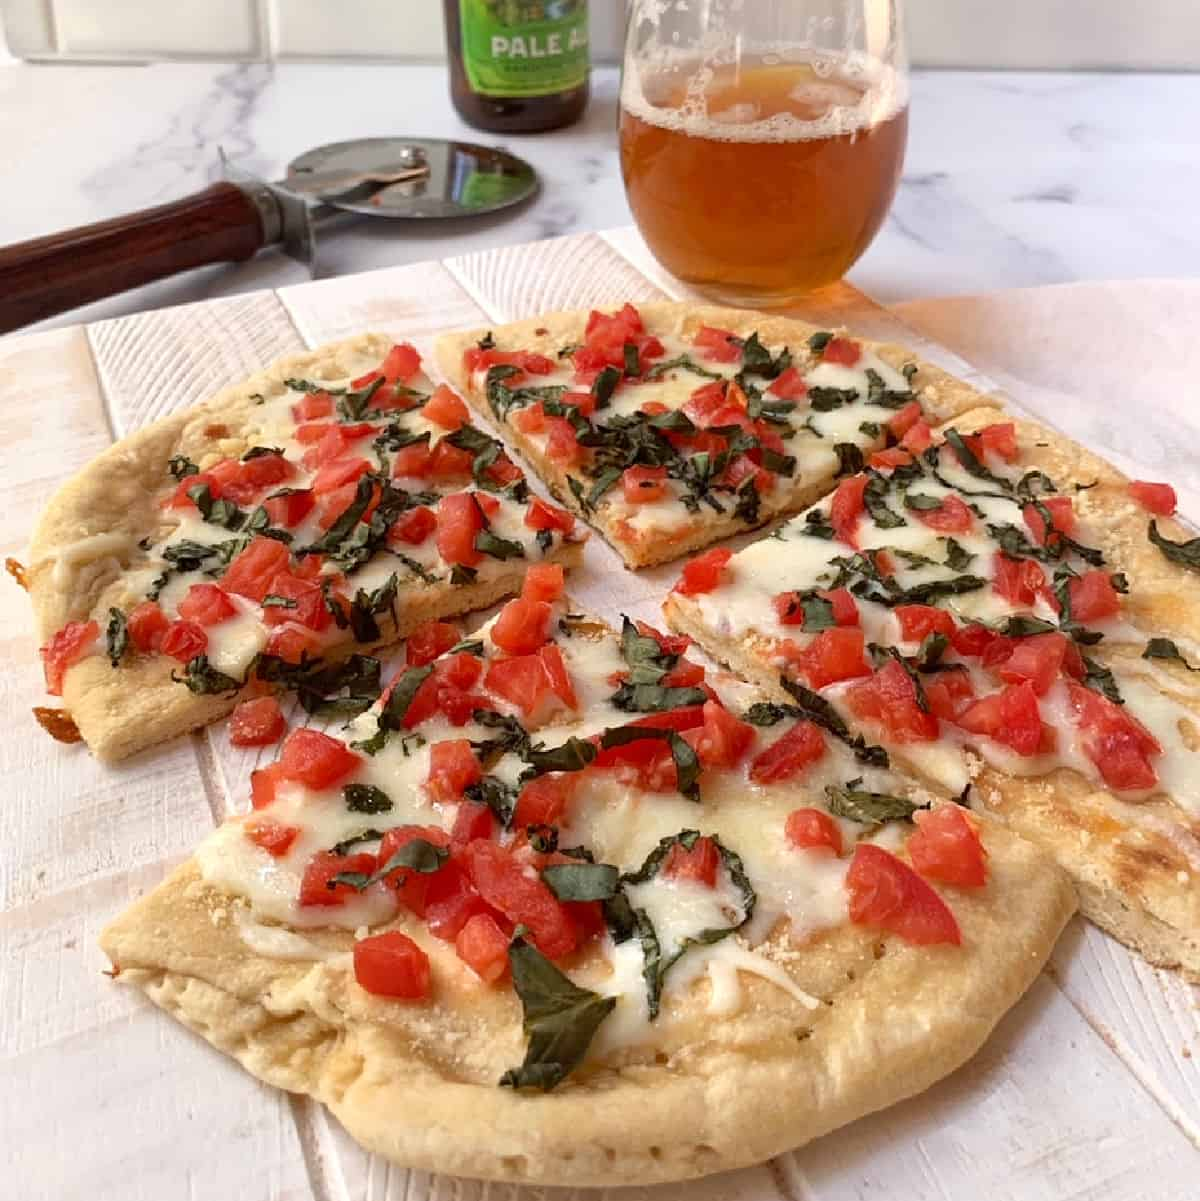 A sliced personal pizza with a glass of beer and a pizza cutter.